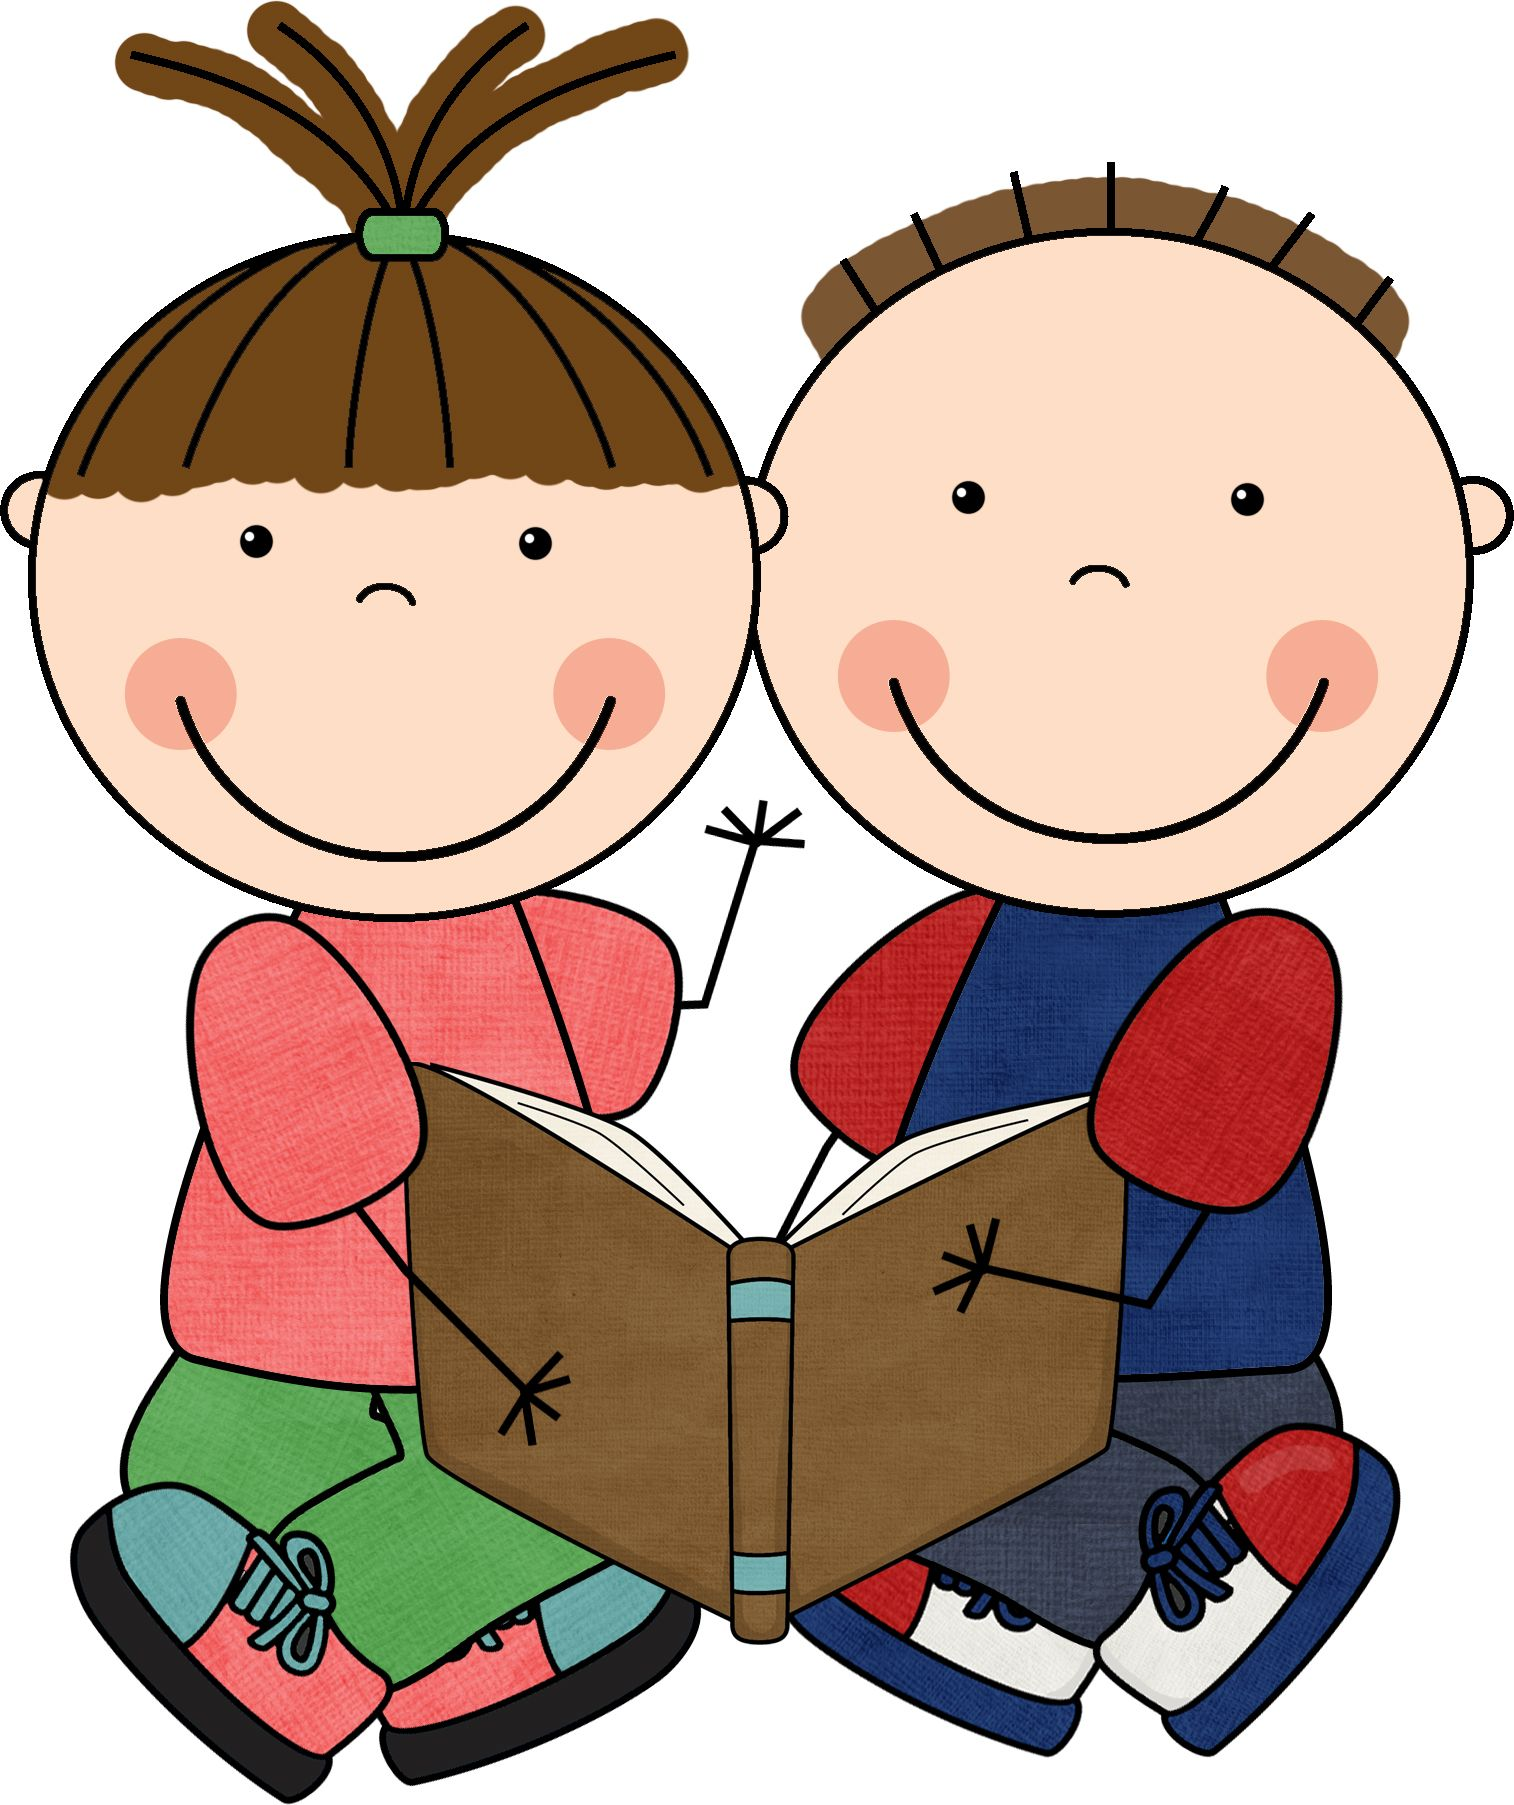 Activities clipart reading. Scrappin doodles index of